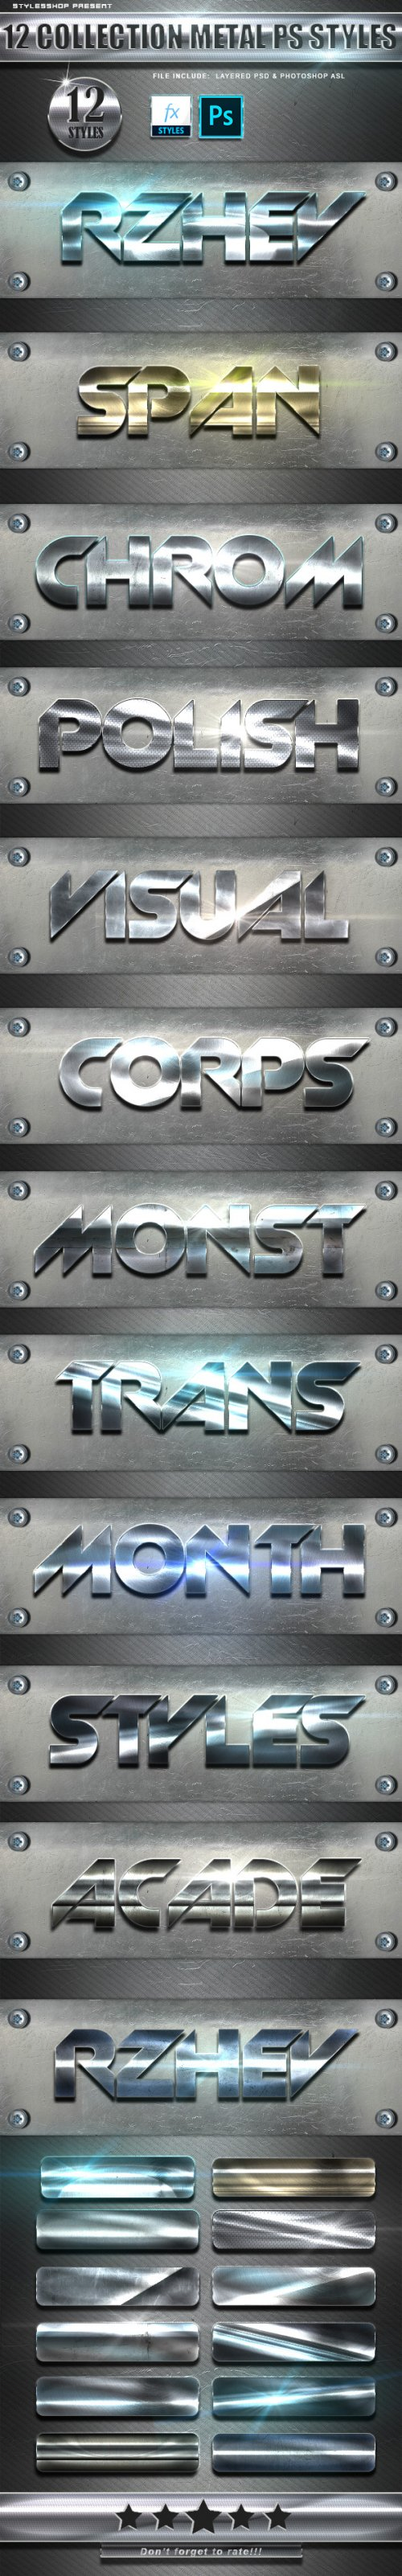 GraphicRiver - 12 Collection Metal Photoshop Text Styles Vol 3 24783635